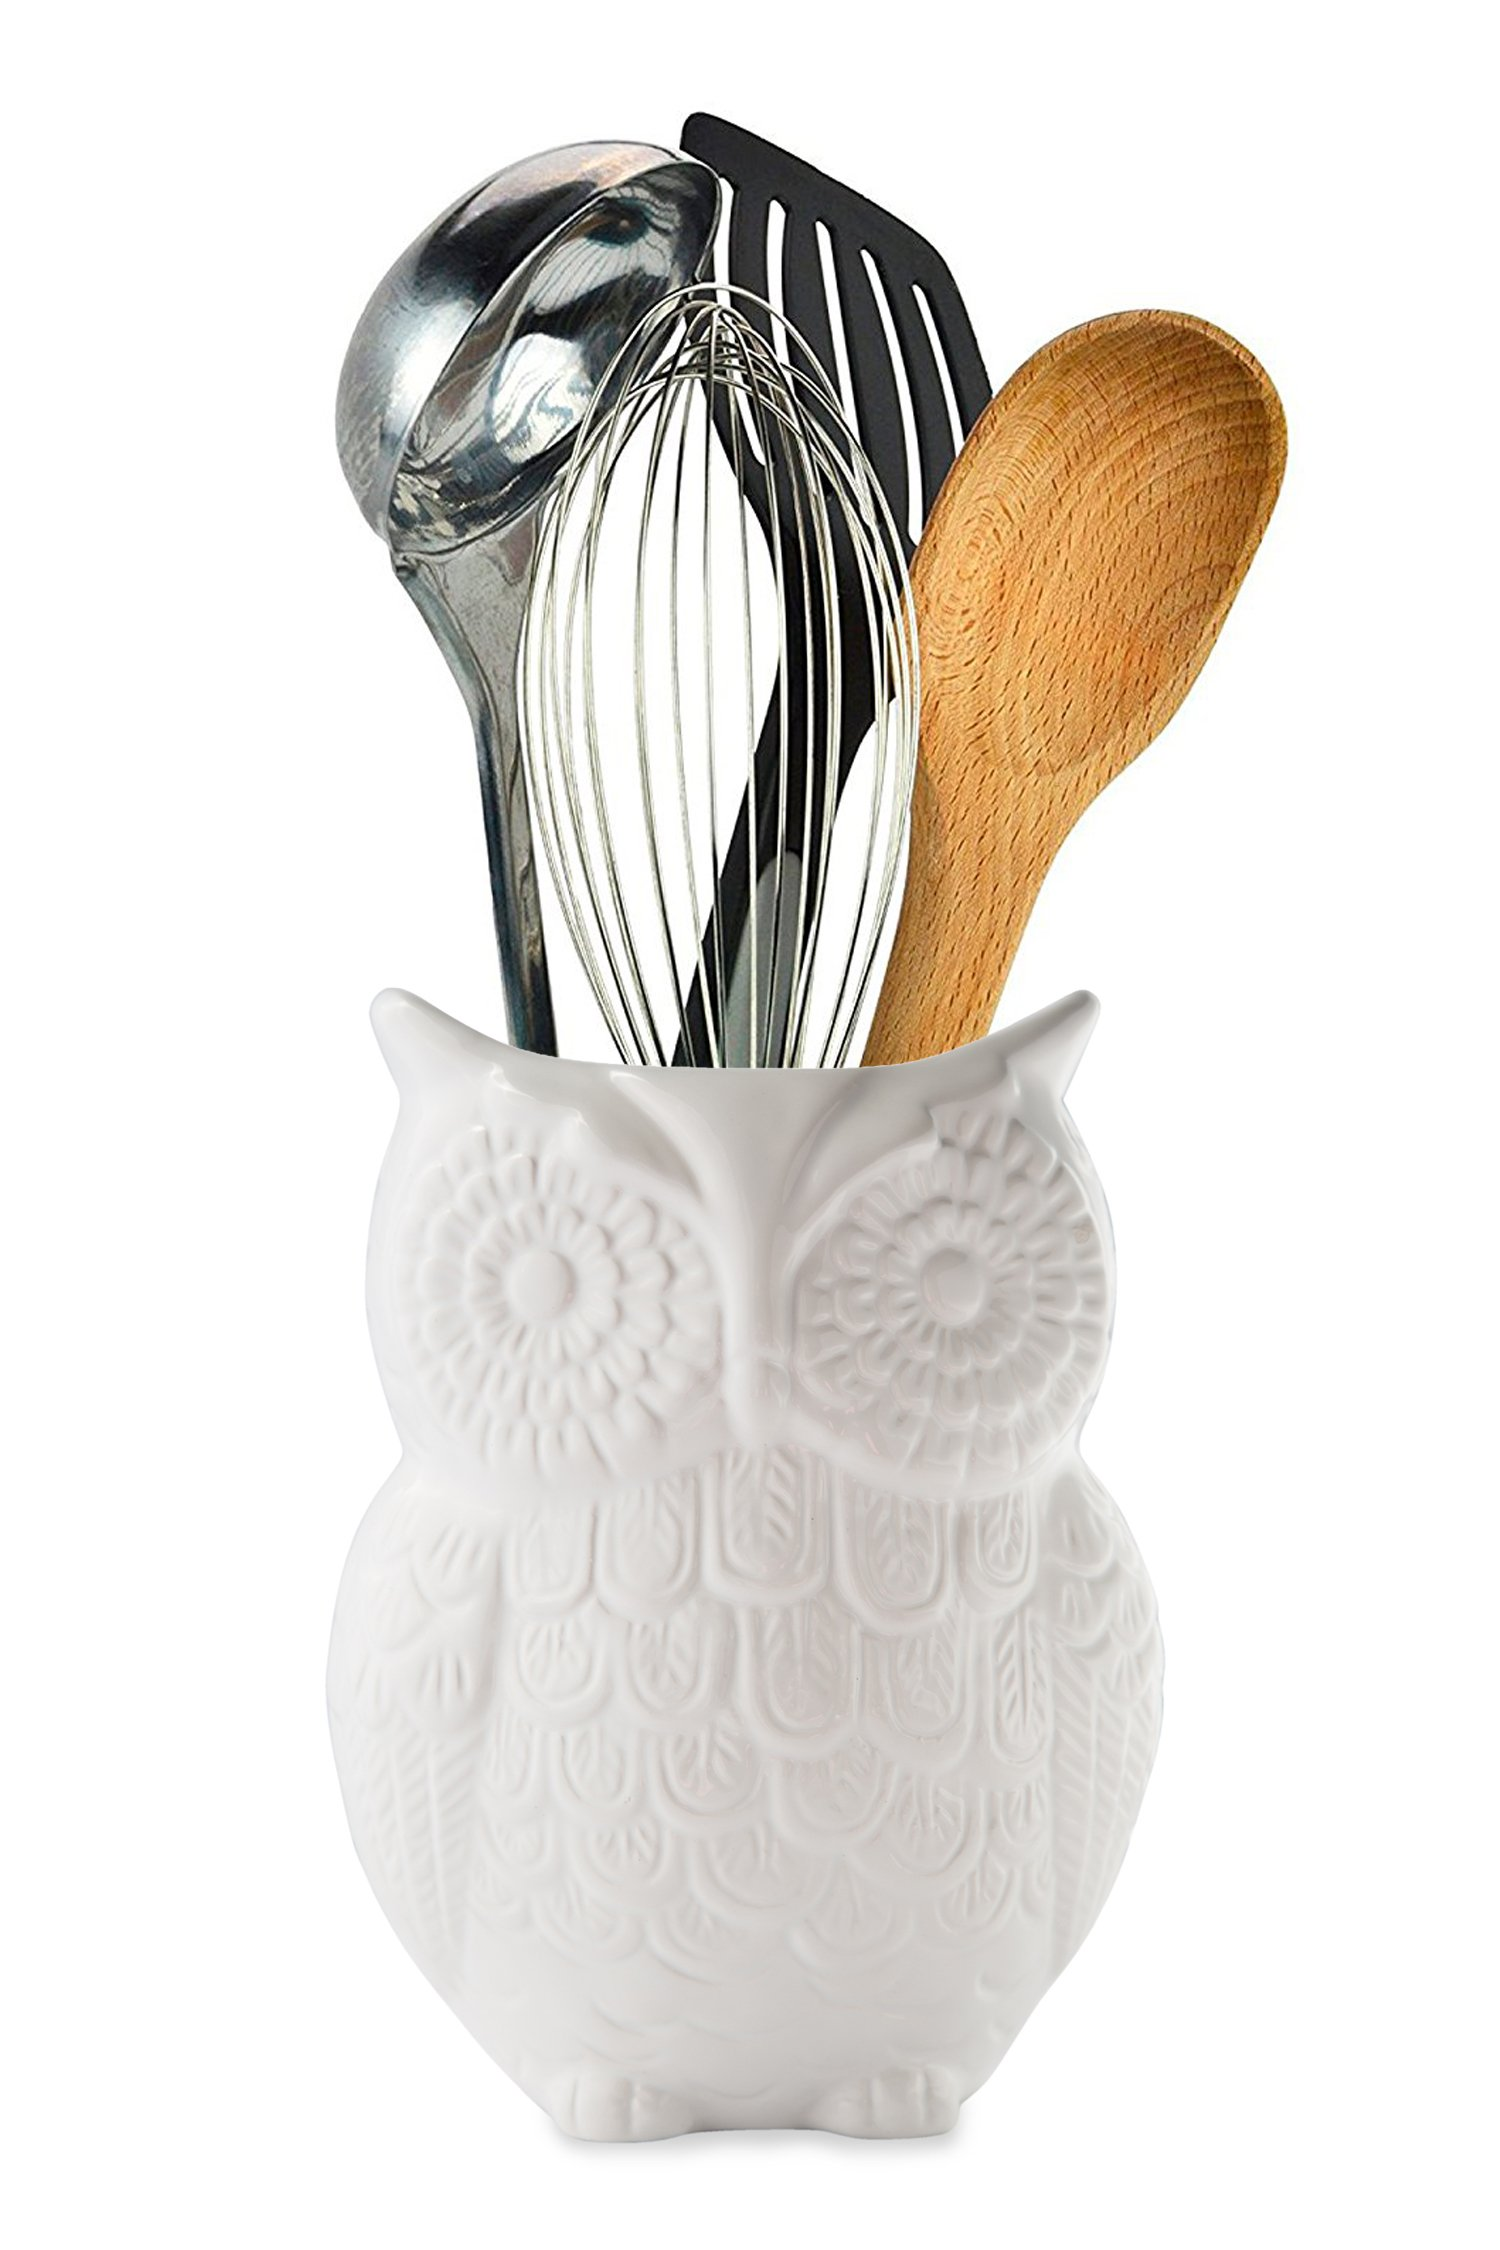 """Owl Utensil Holder by Comfify - Decorative Ceramic Cookware Crock & Organizer, in Lovely White Color - Utensil Caddy and Perfect Kitchen Ceramic Décor Gift - 5"""" x 7"""" x 4"""" Size"""